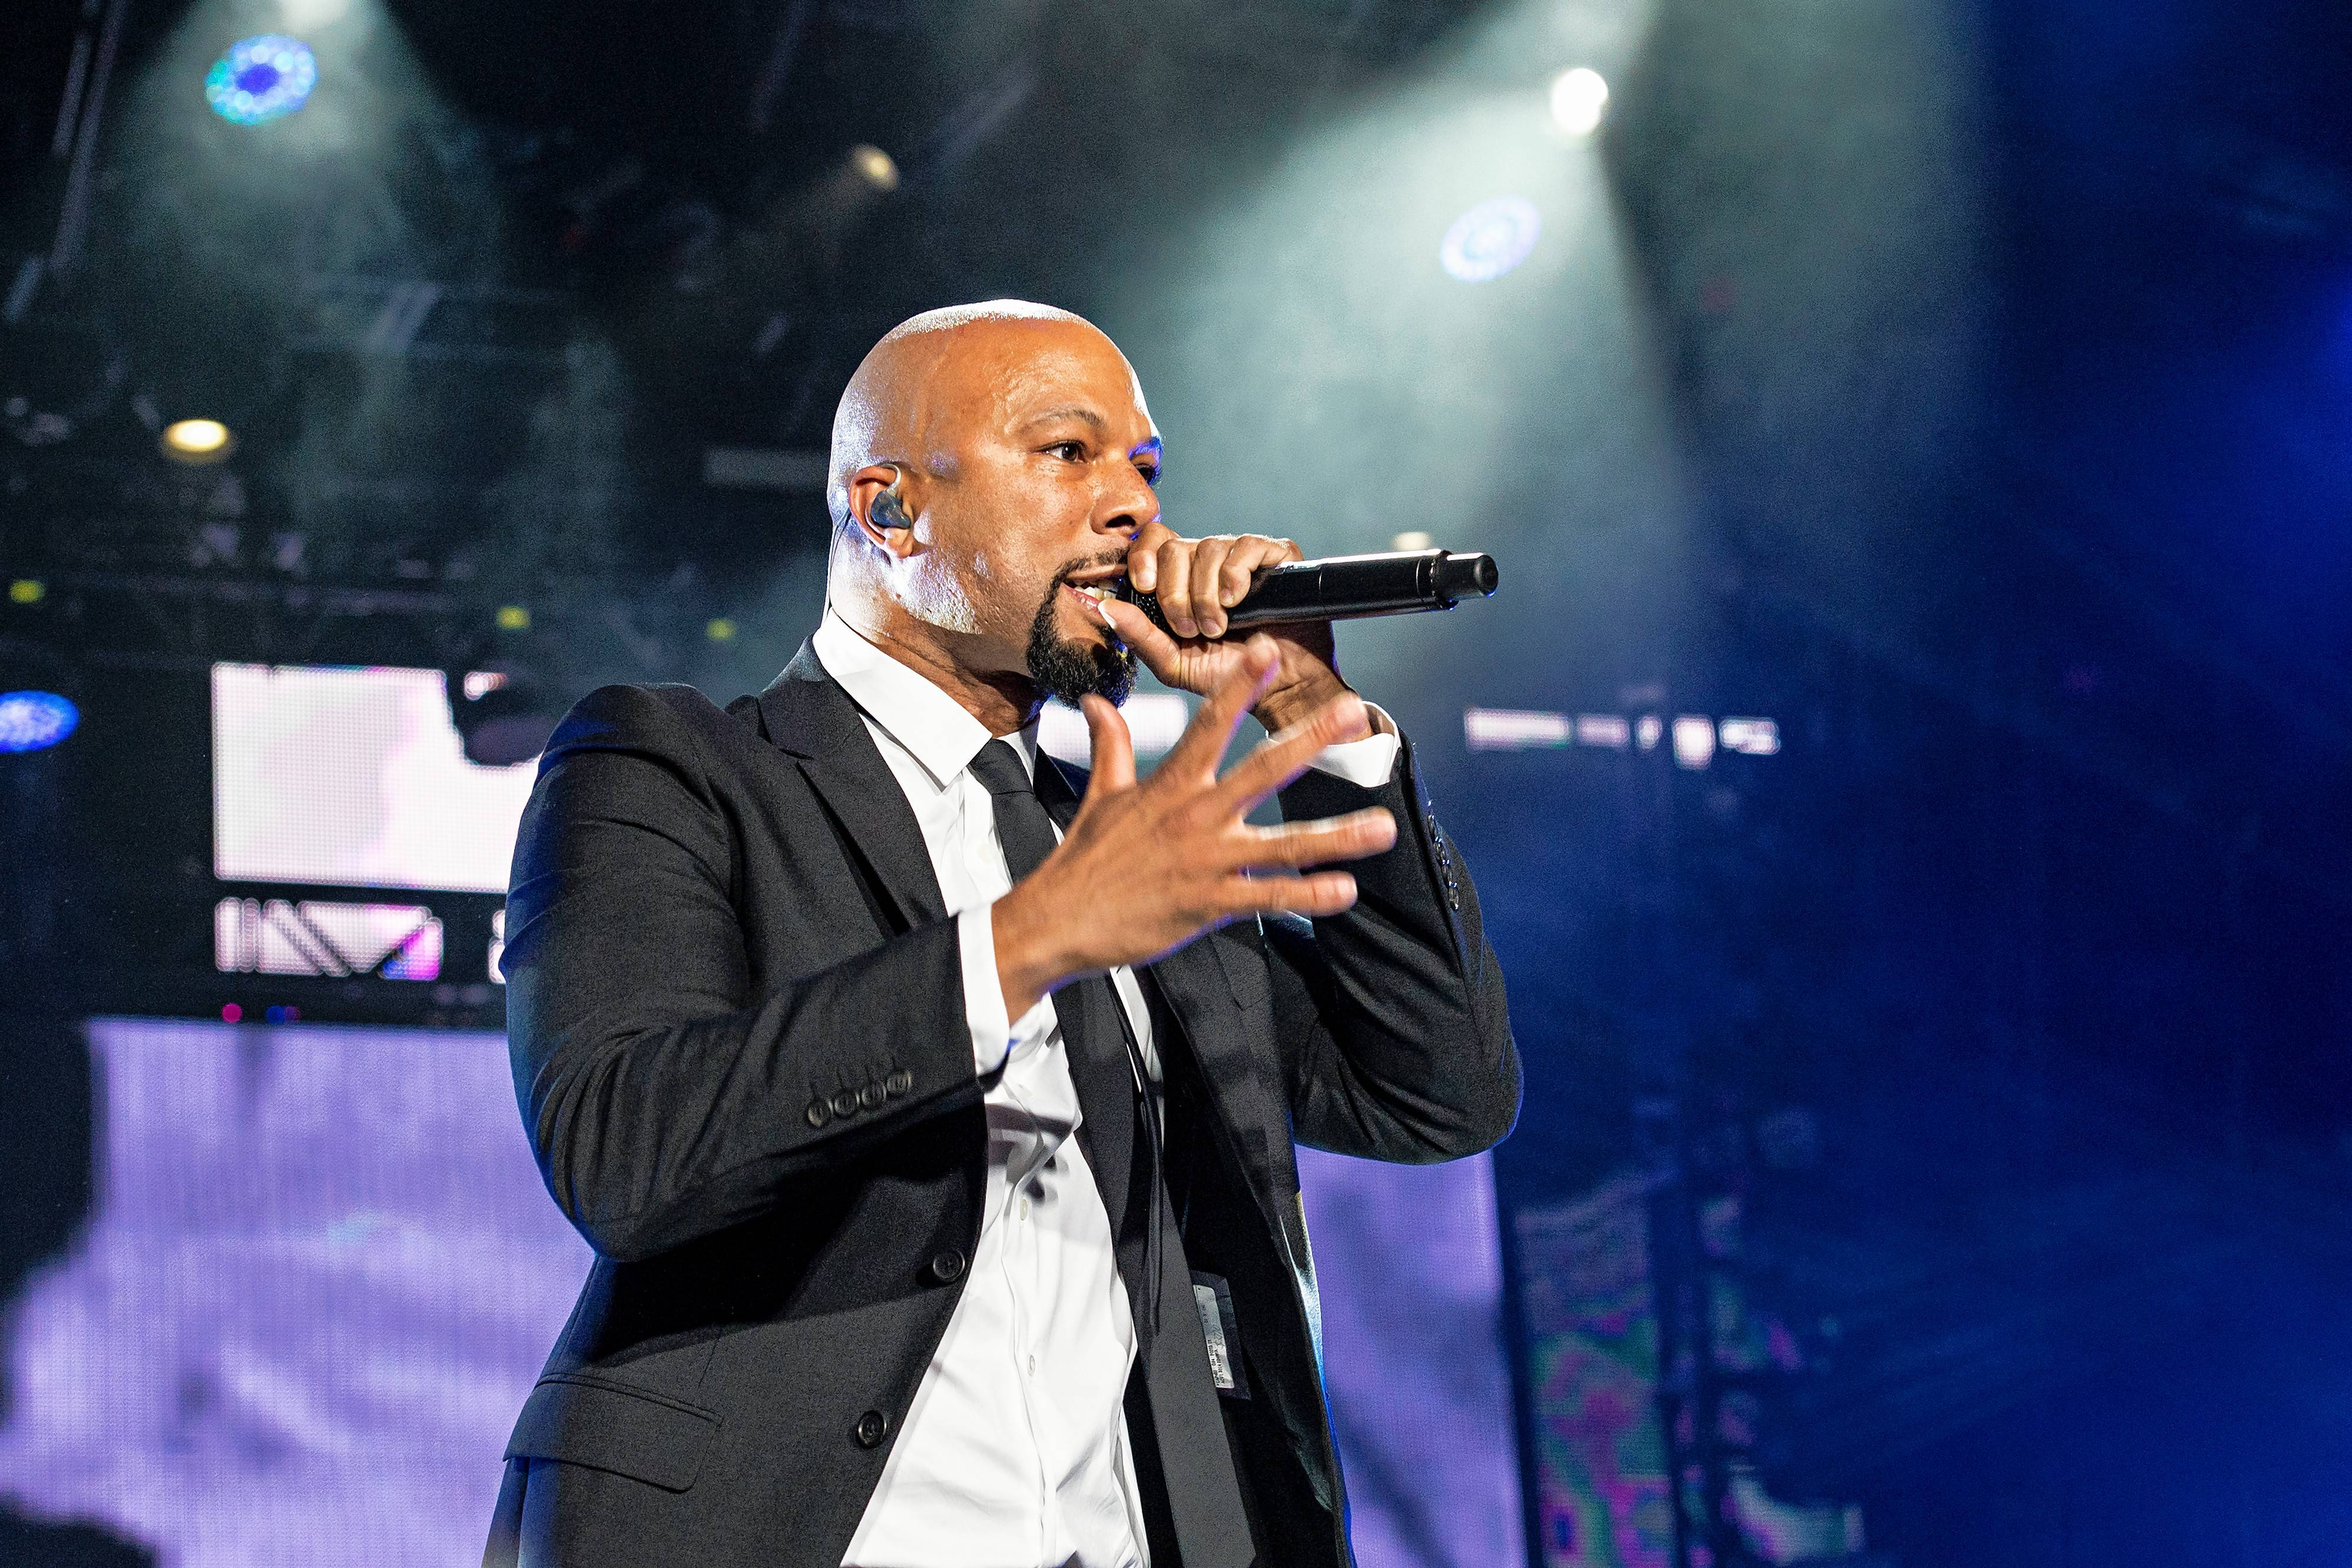 Rapper Common returns to the Chicago area for a show at Ravinia Festival Saturday, June 24.